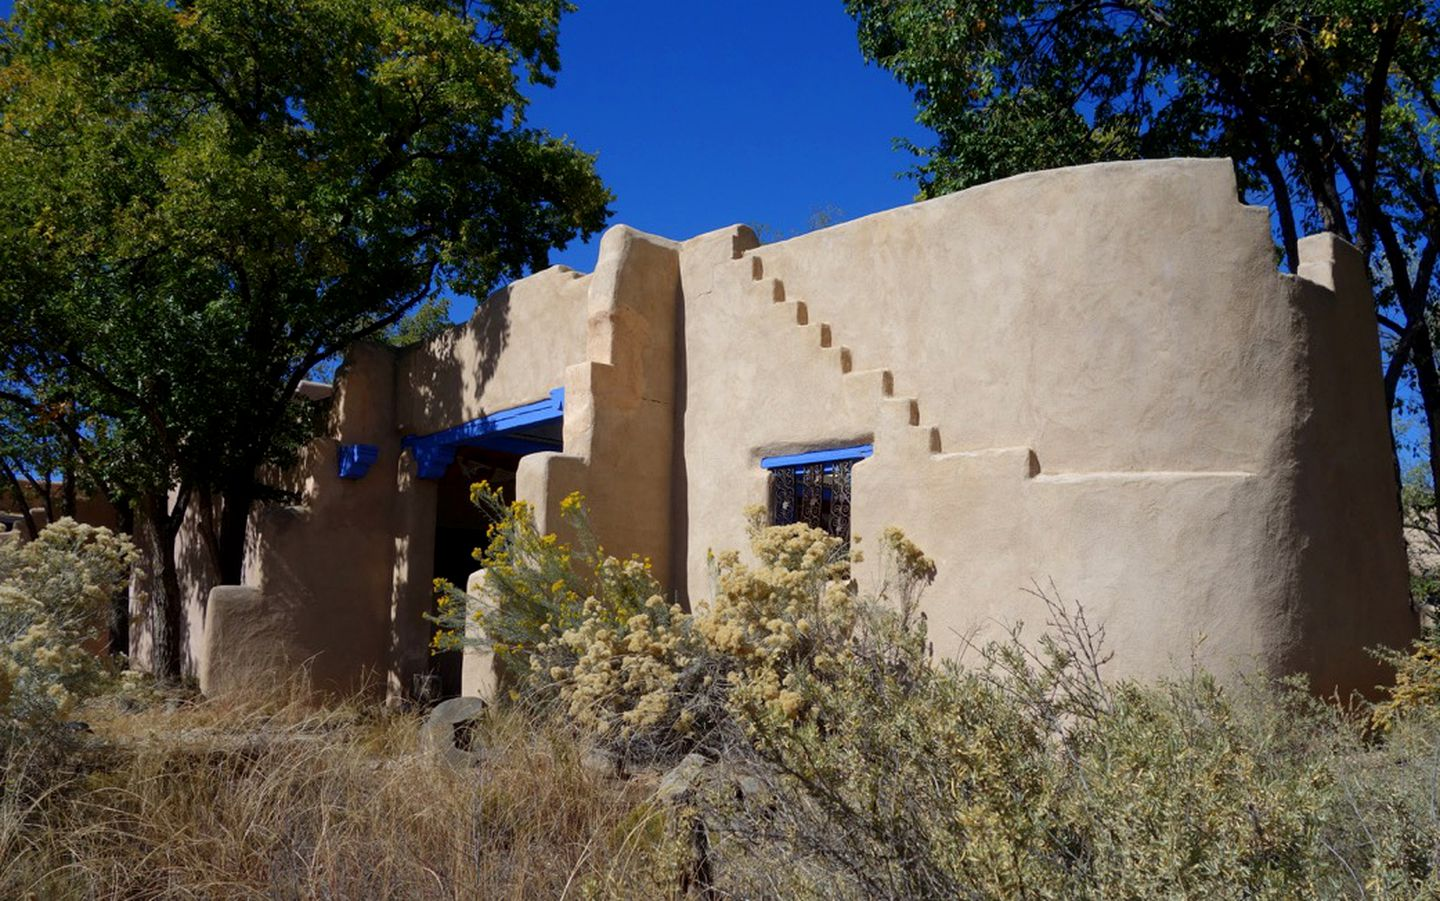 Cottages (Santa Fe, New Mexico, United States)